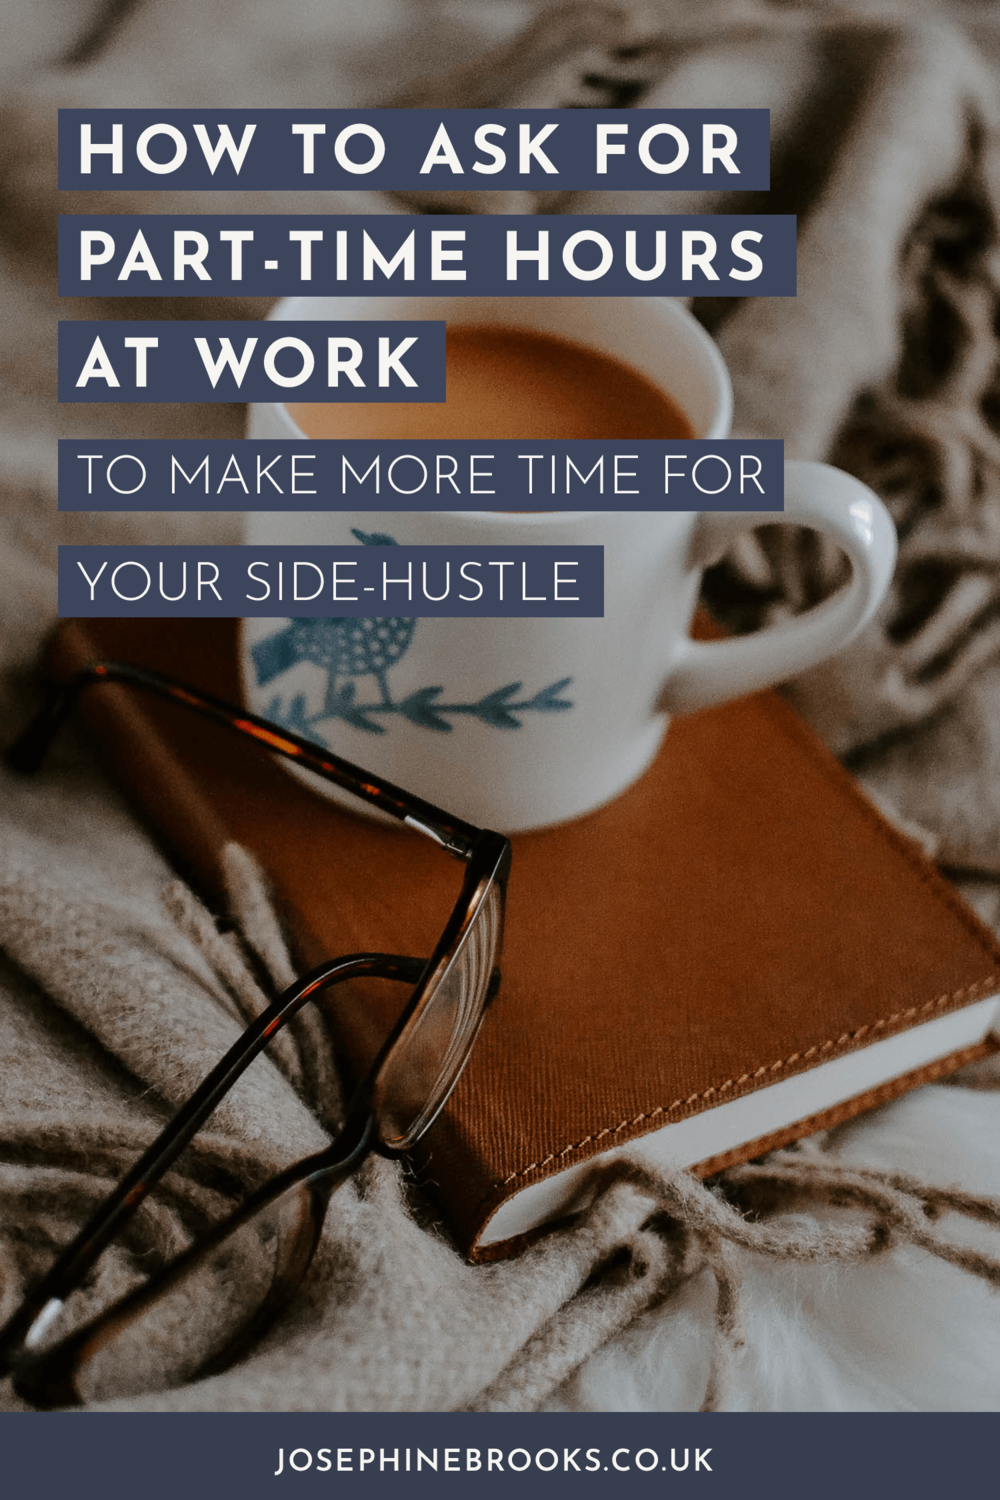 How to ask for part-time hours at work, so you can make more time for your side-hustle